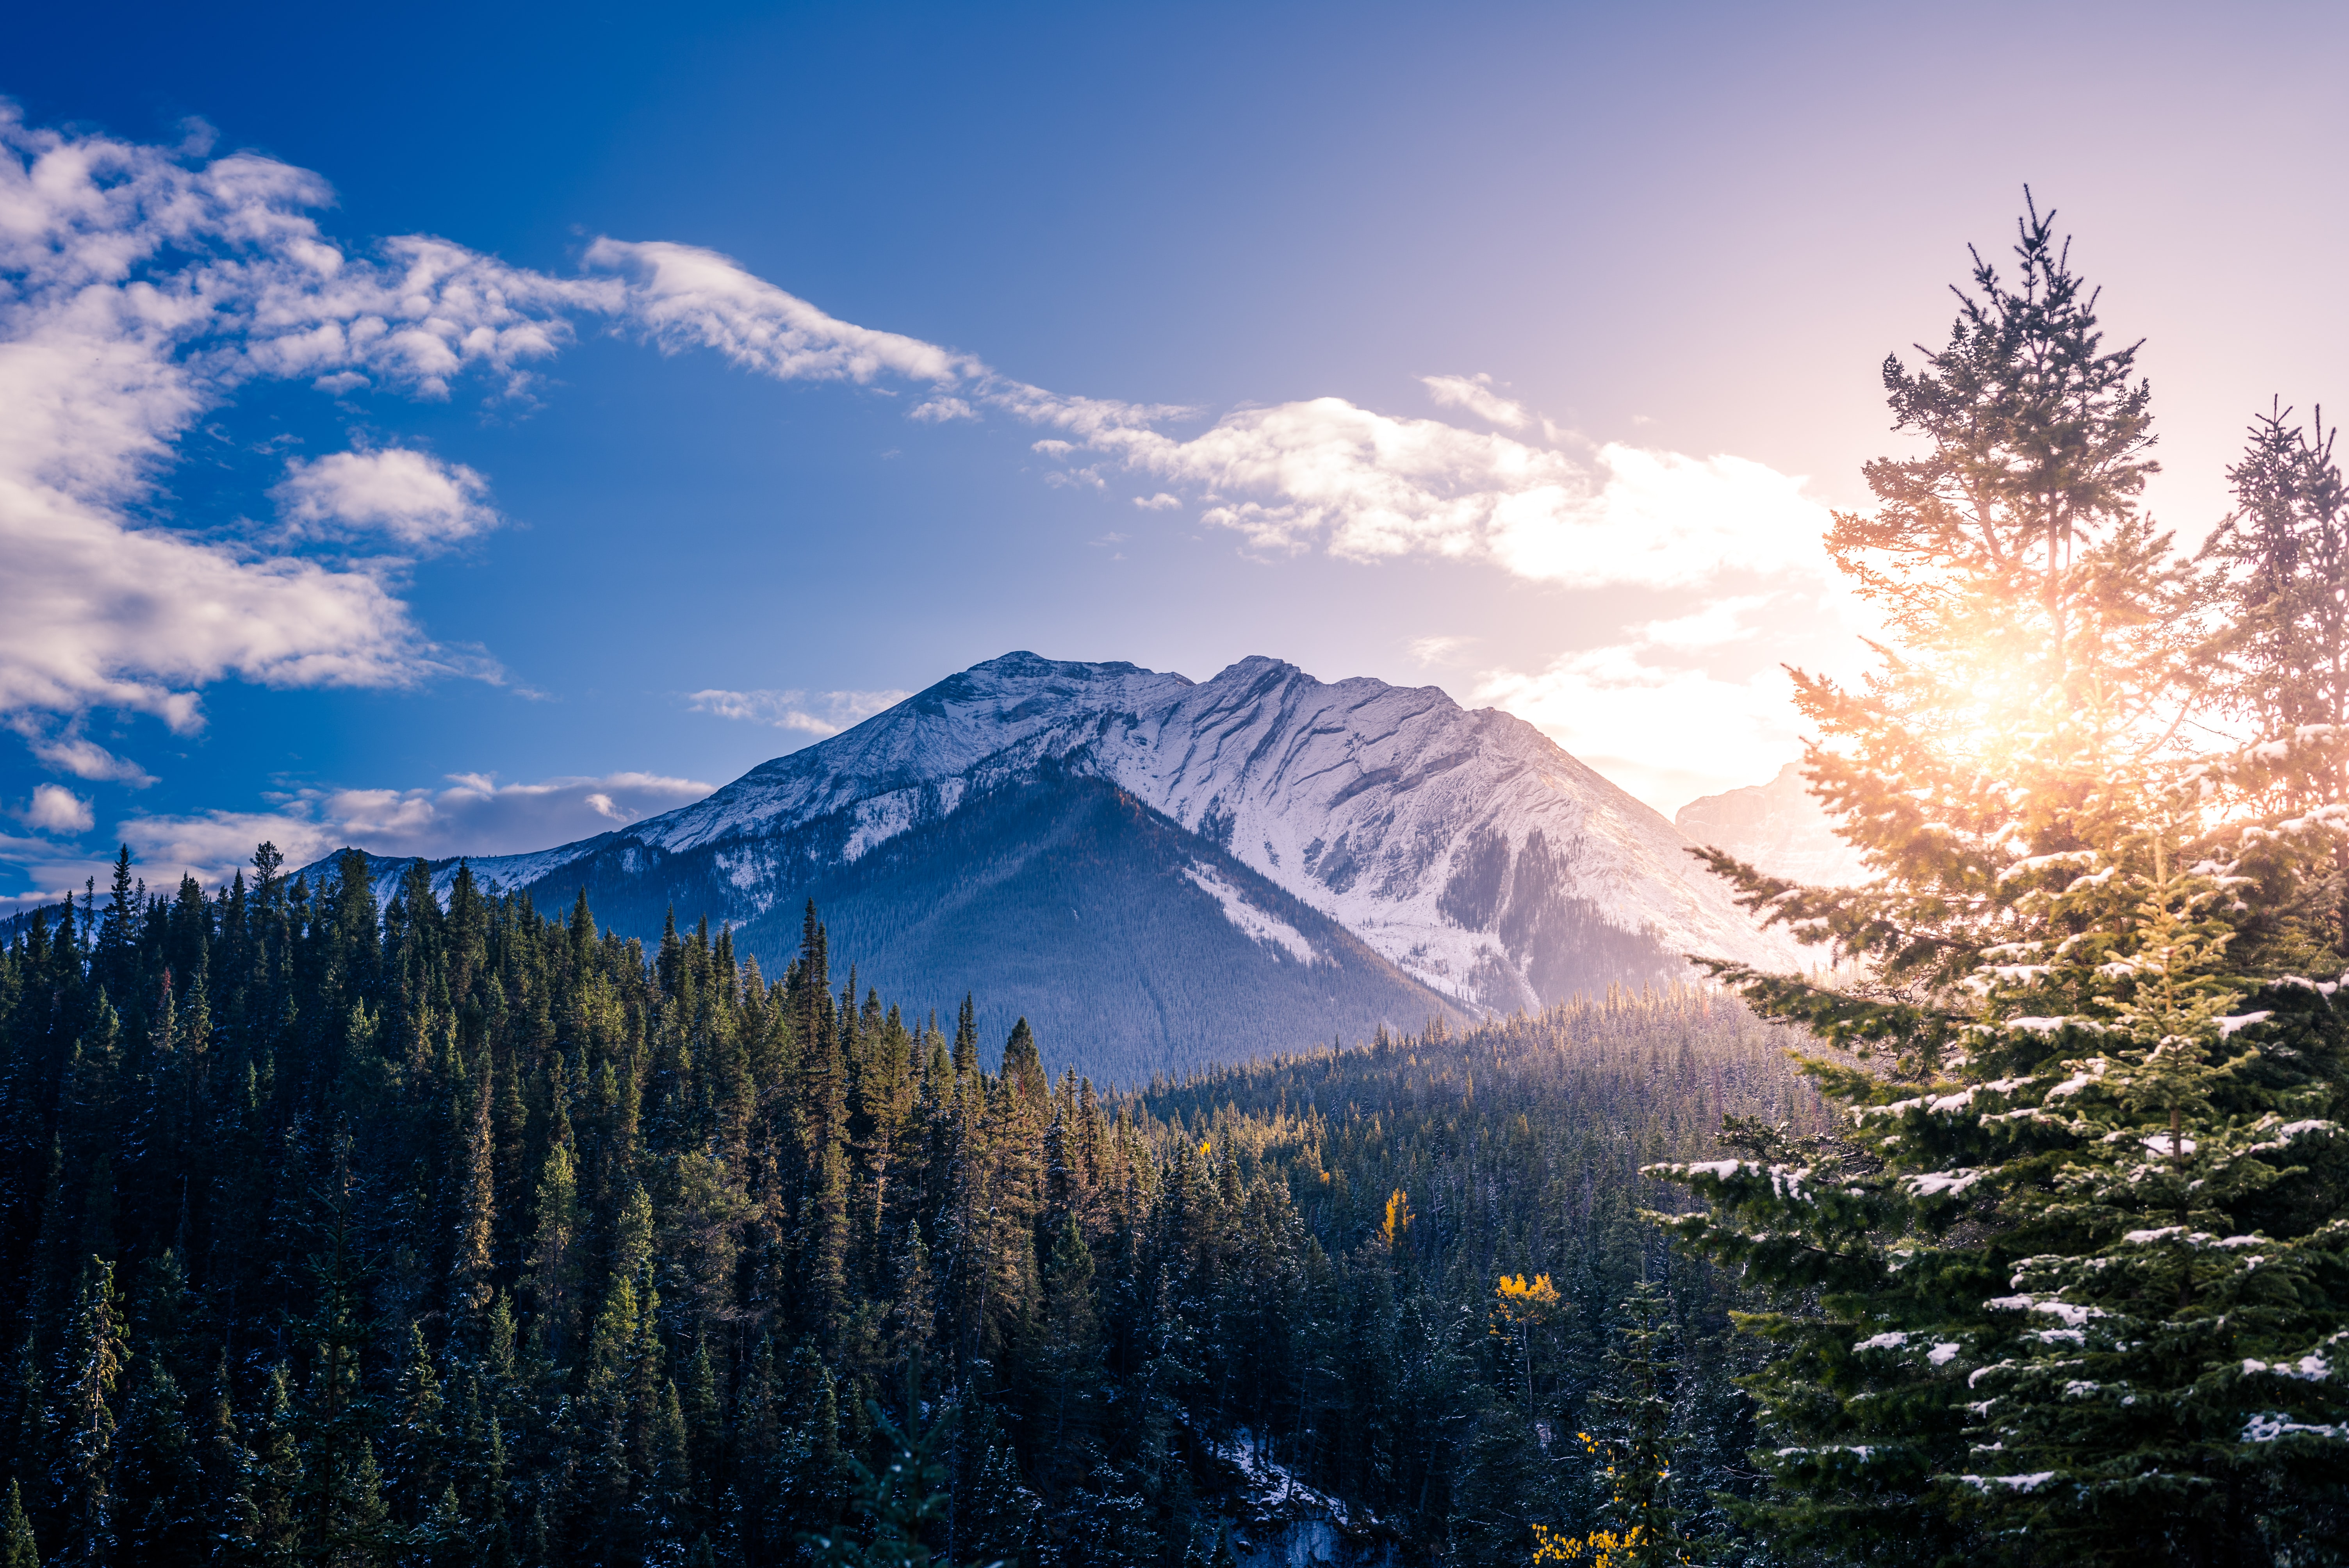 pine trees with background of mountain range